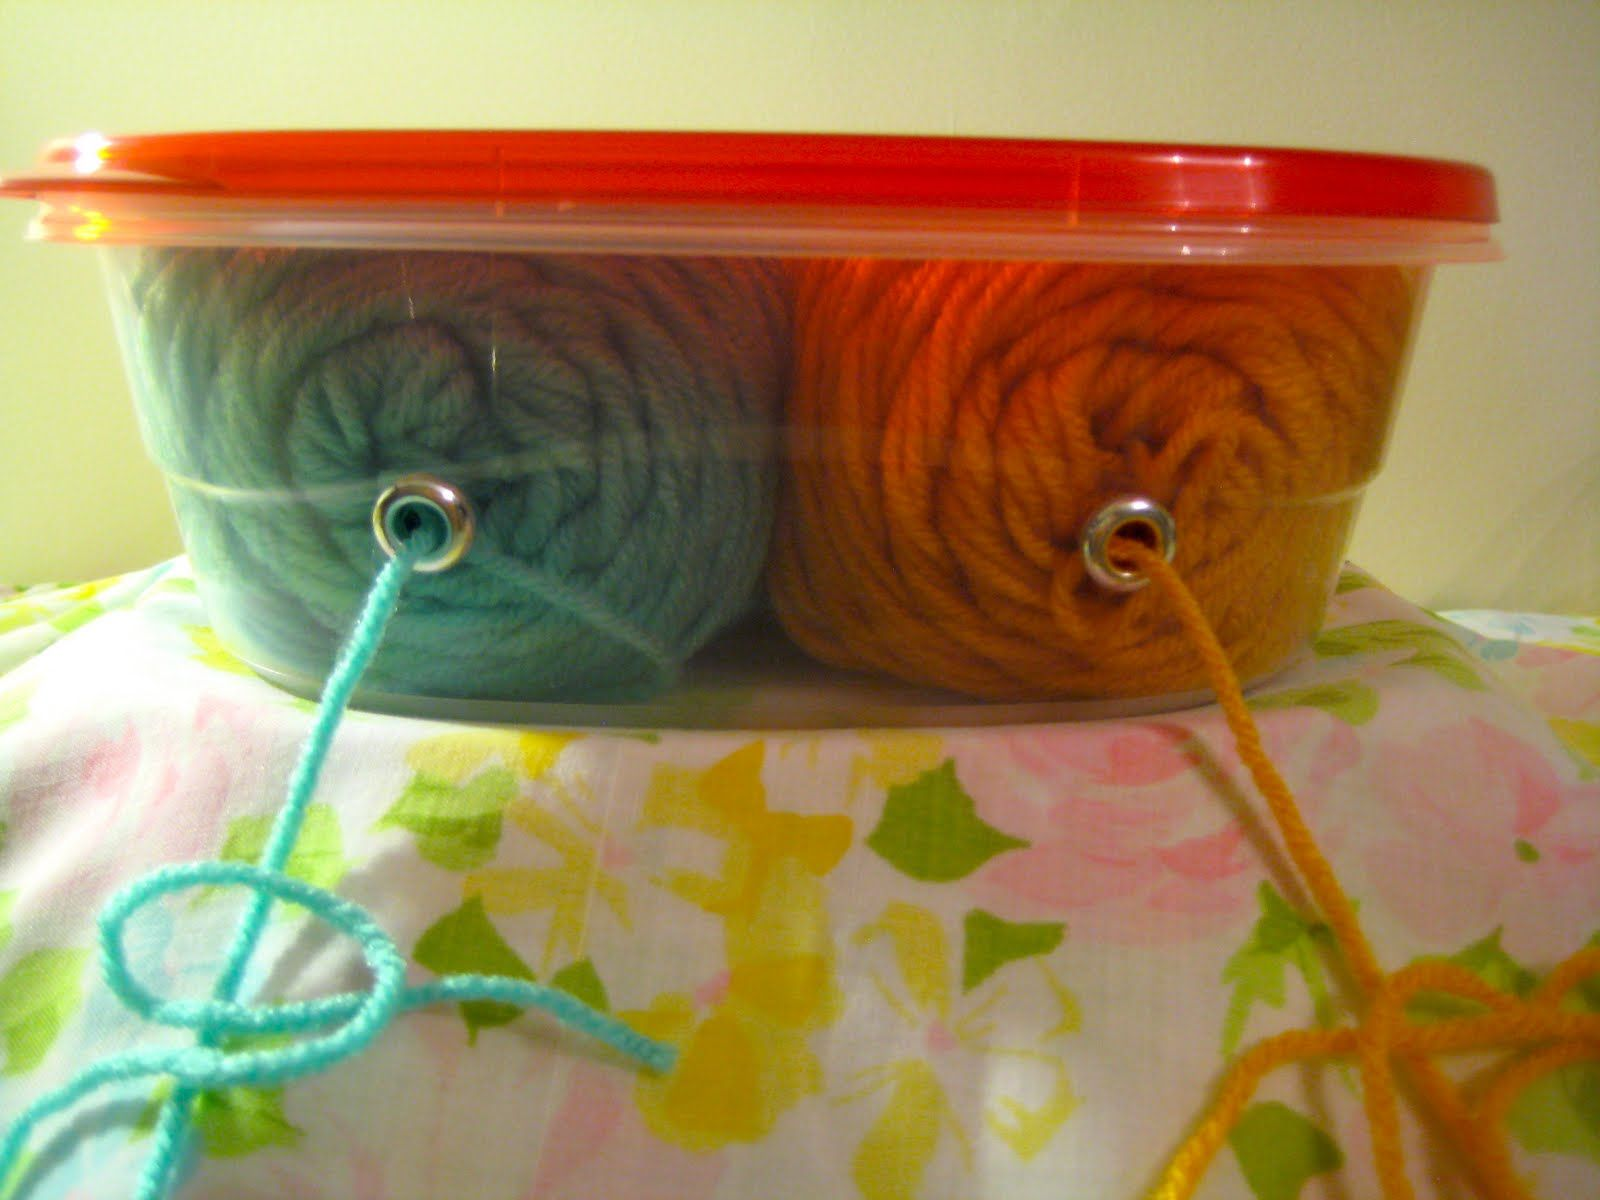 Great idea for keeping yarn tidy for multi-colored projects - punch/drill holes in one side of plastic container large enough to fit two skeins, grommet holes, thread yarn through, and work stays neat.  Genius diy from Chatterbox Jenn